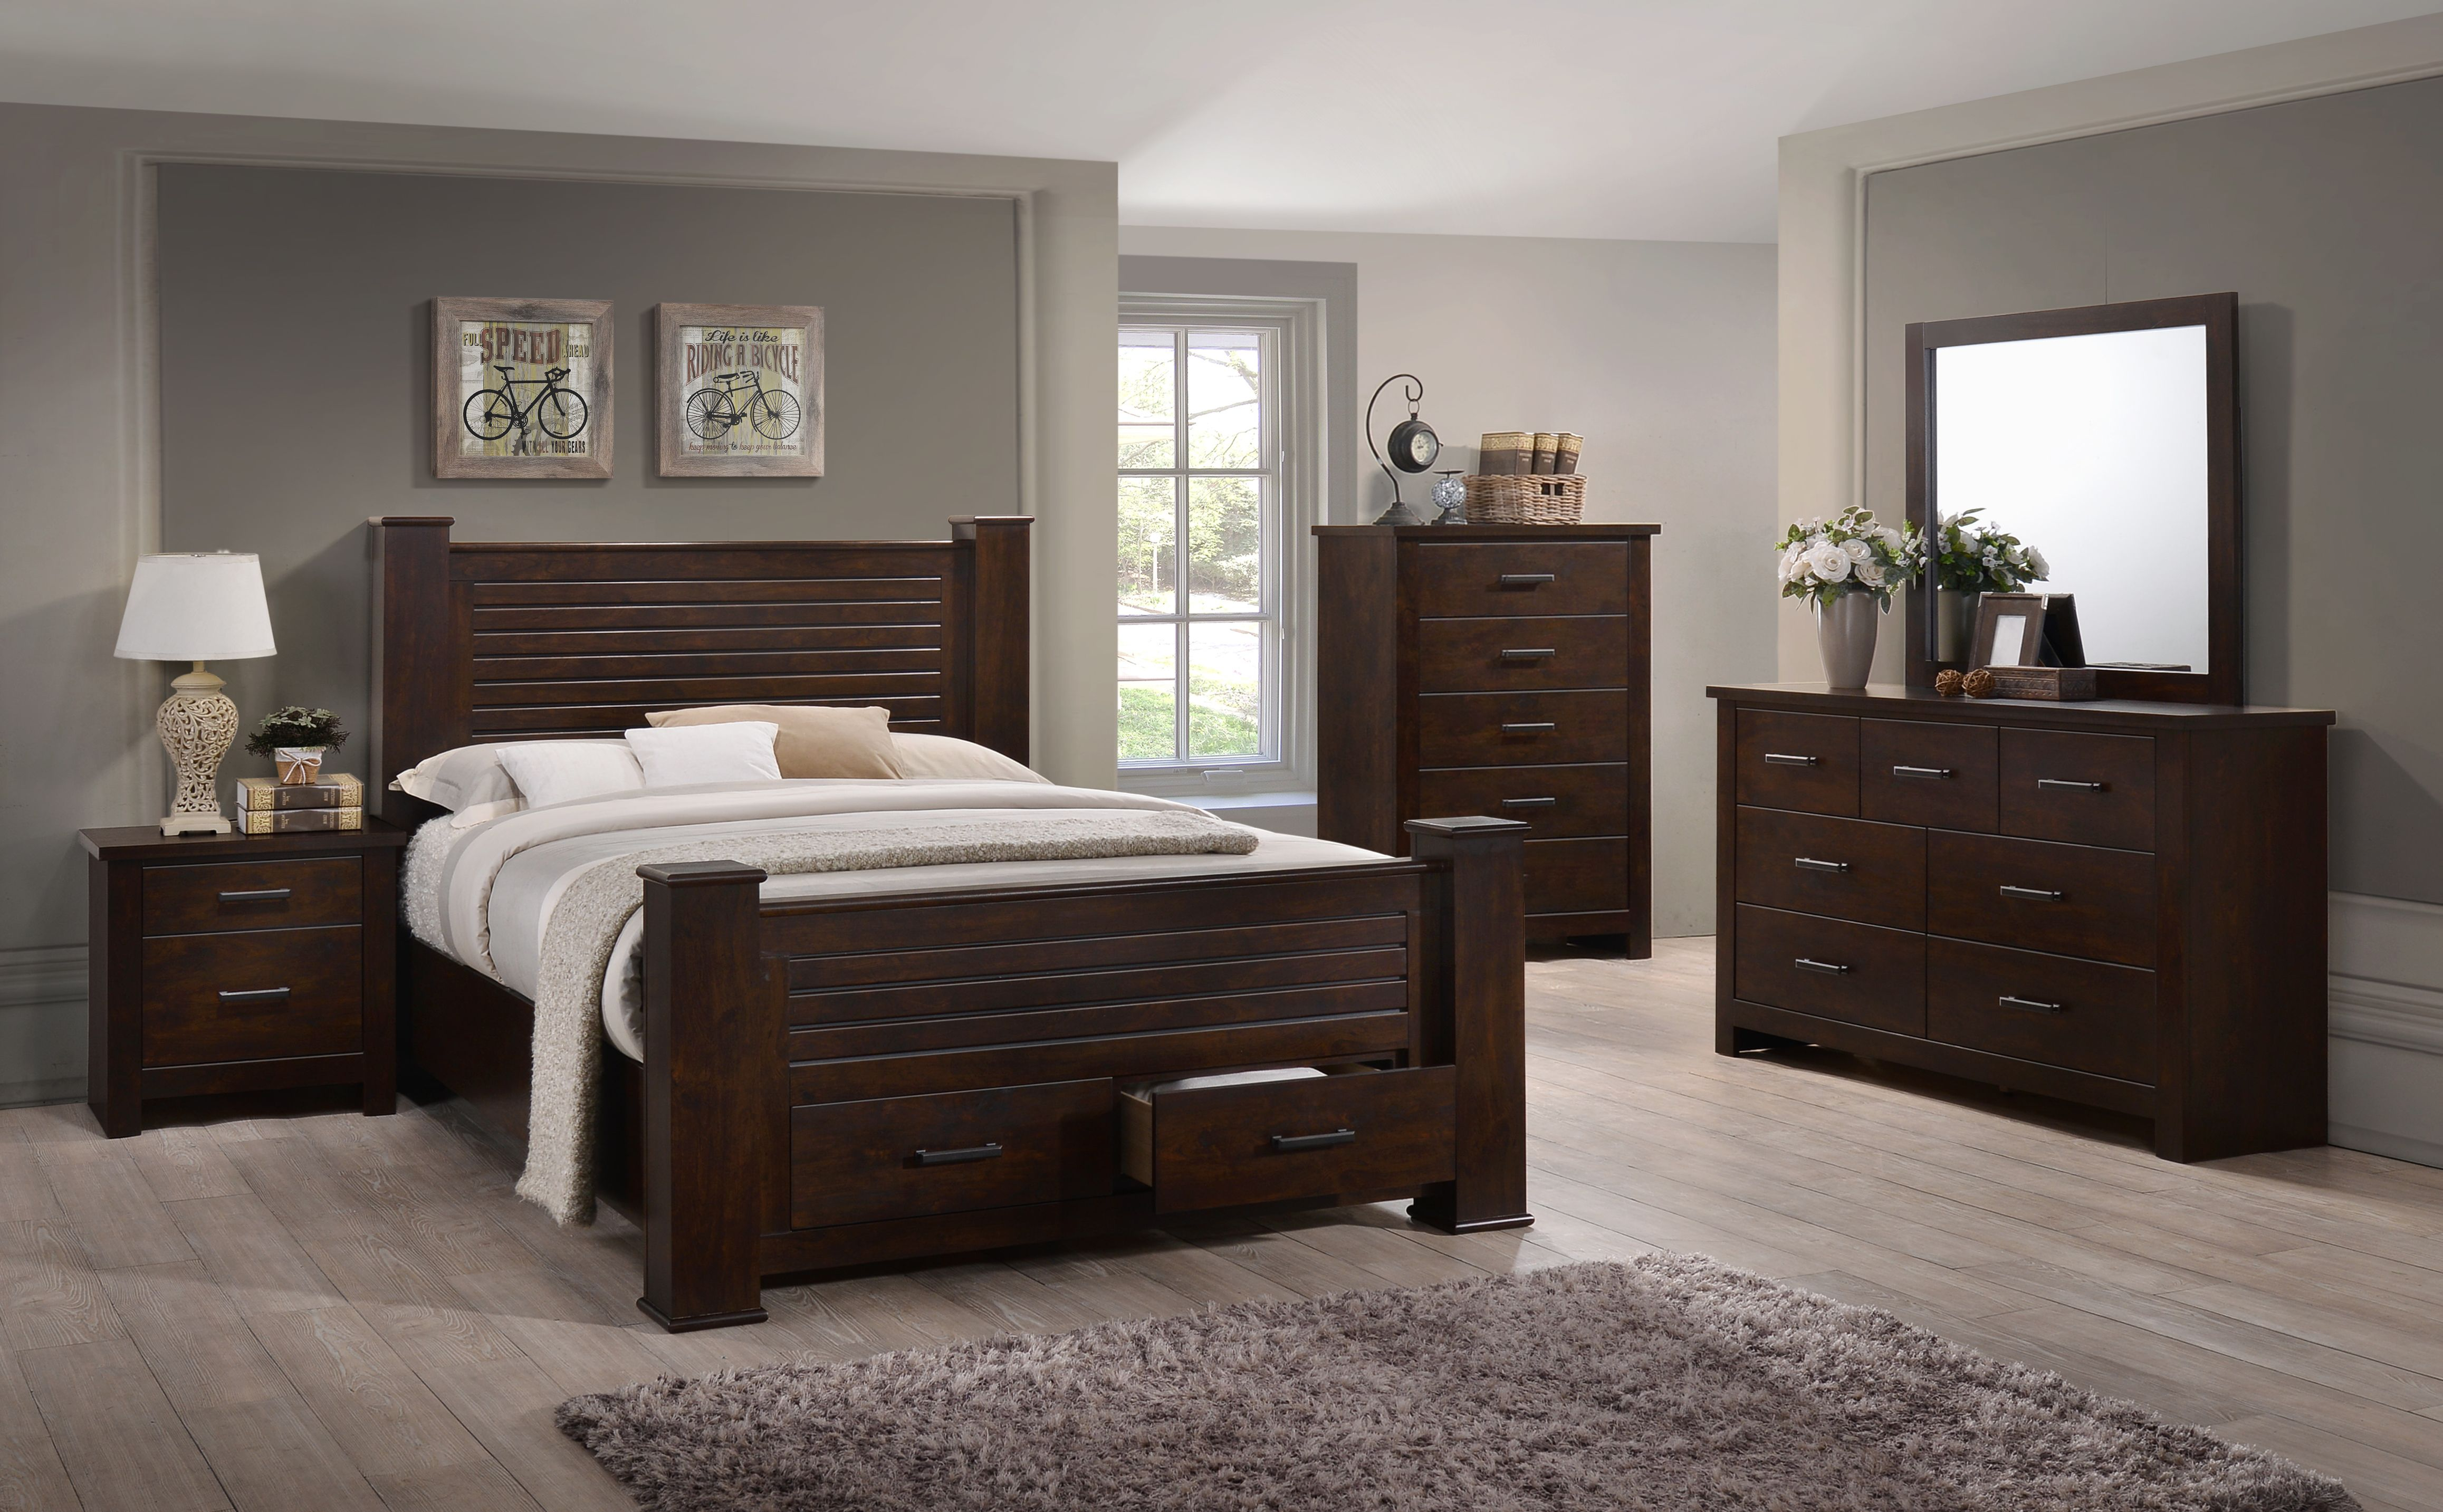 Palmore Storage Post Bedroom Collection Bedroom Furniture Sets